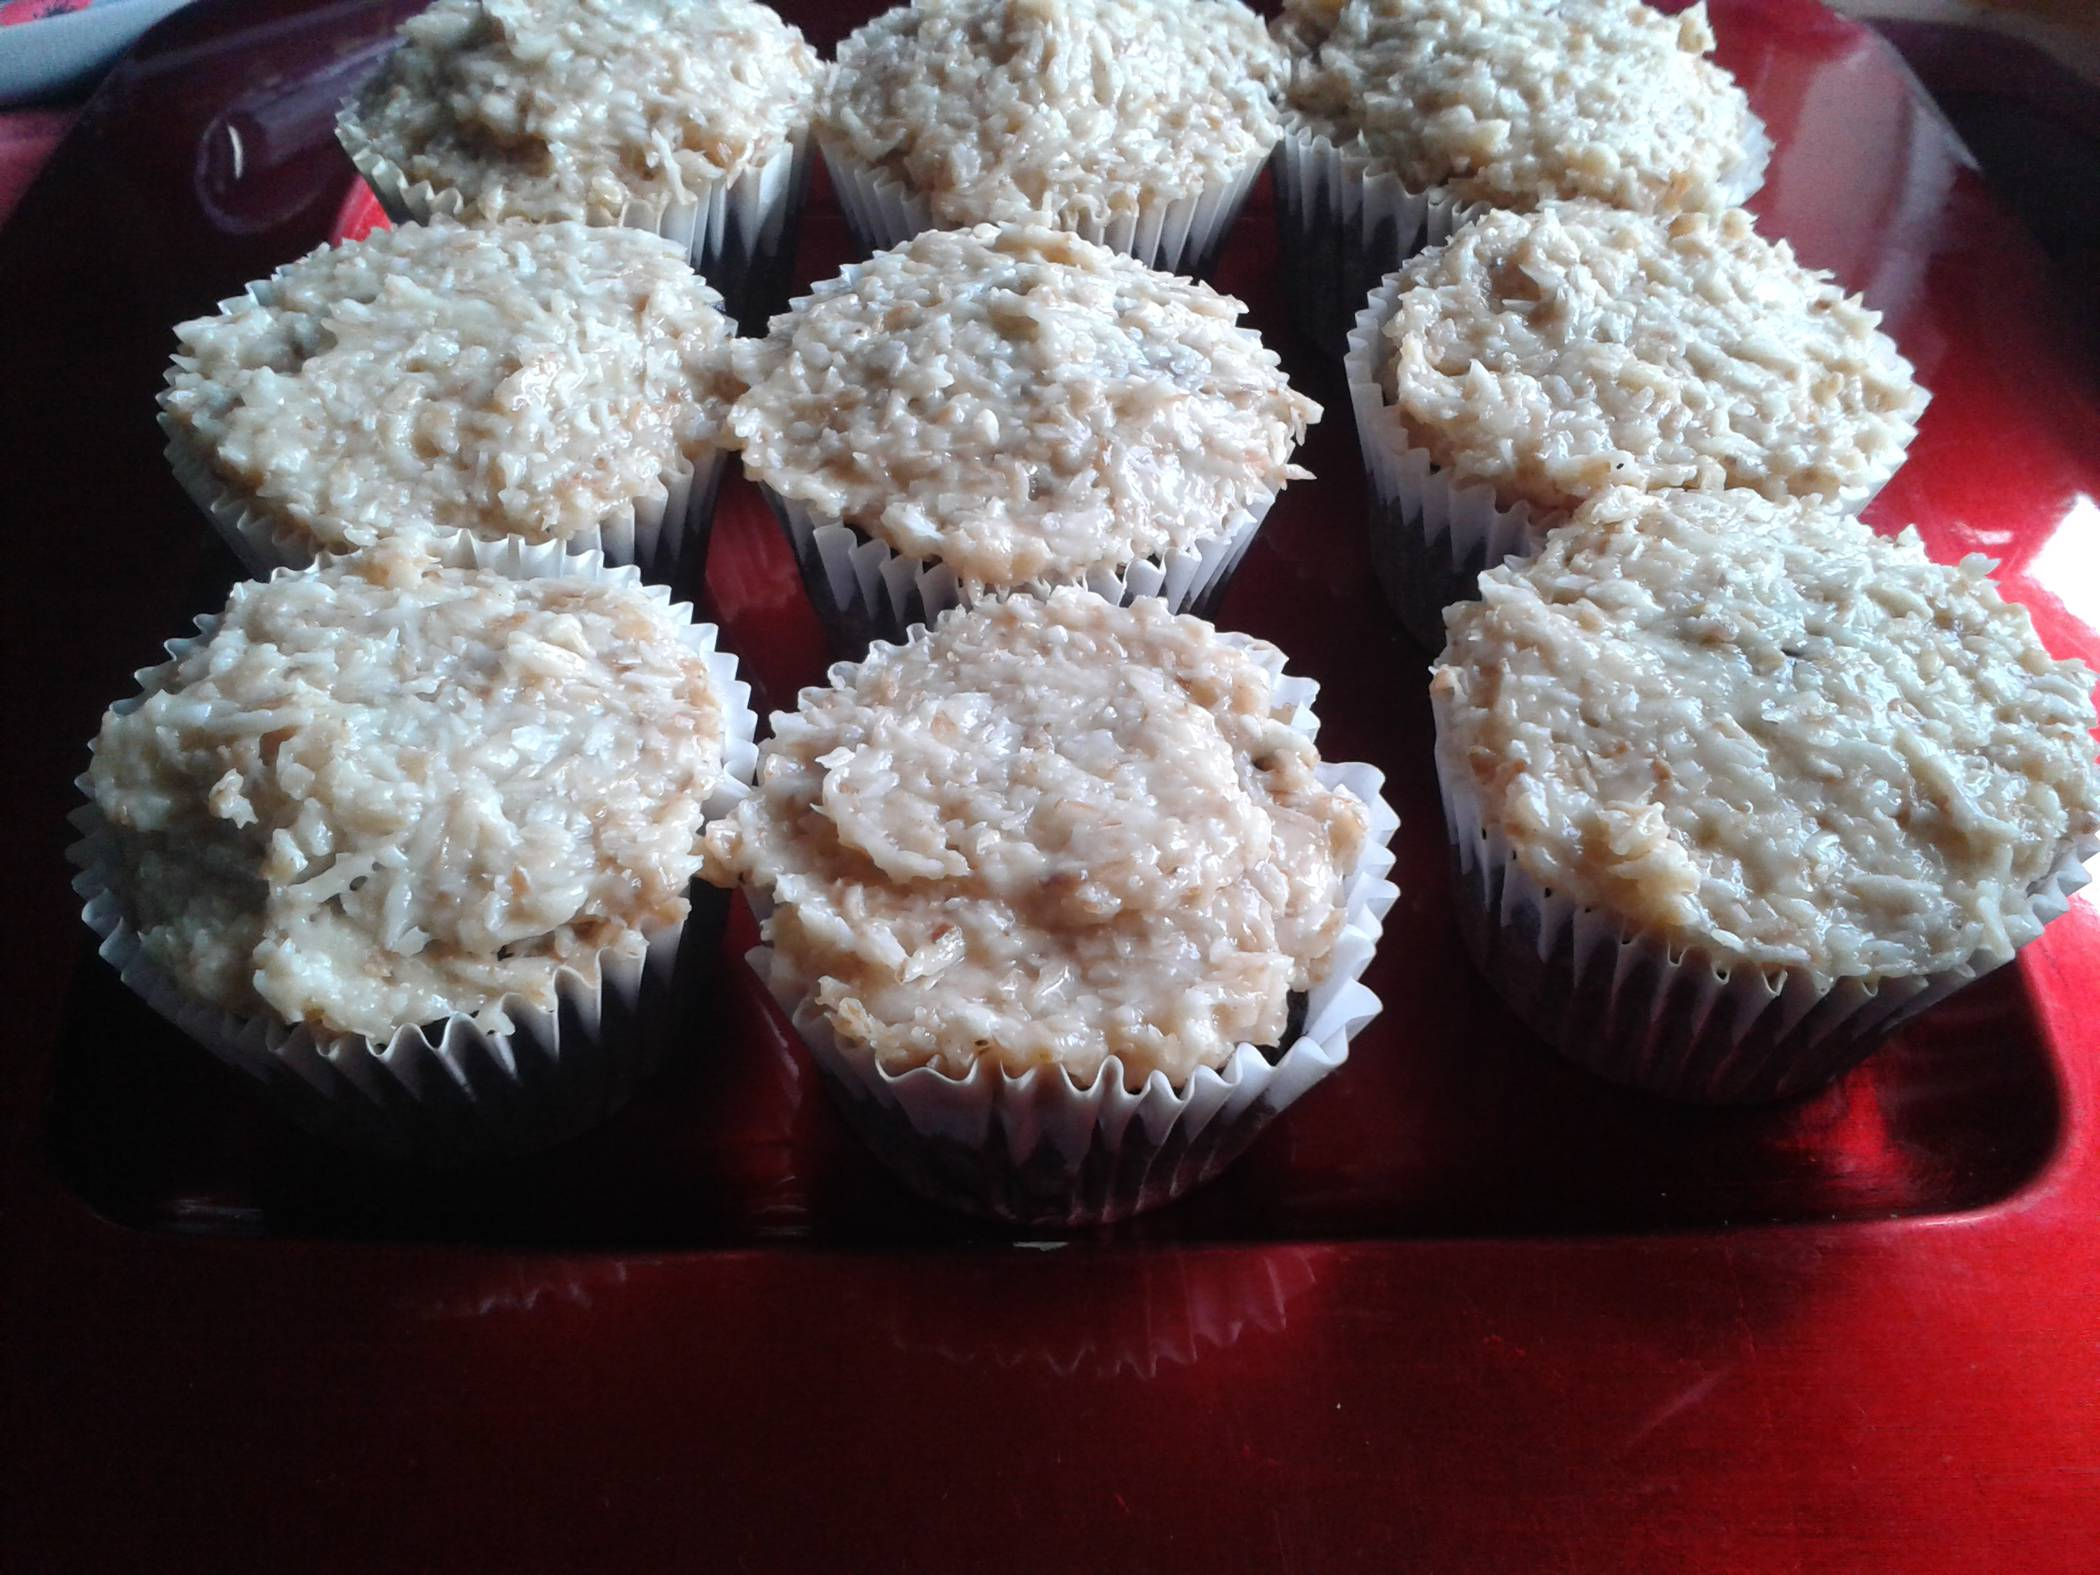 Vegan Chocolate Cupcakes with Coconut Frosting